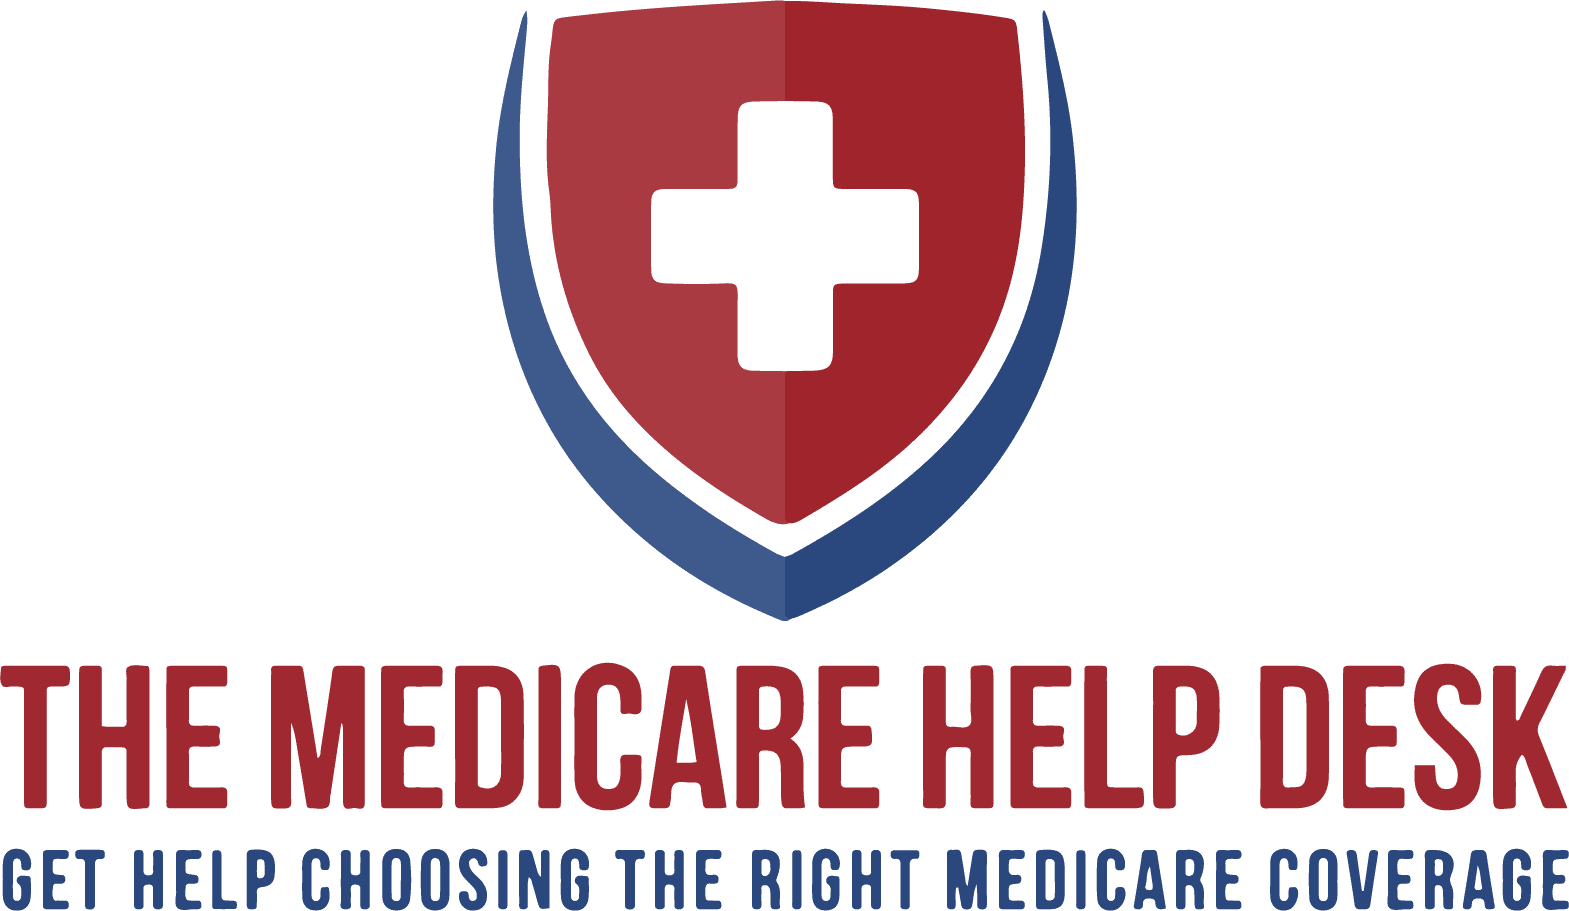 The Medicare Help Desk